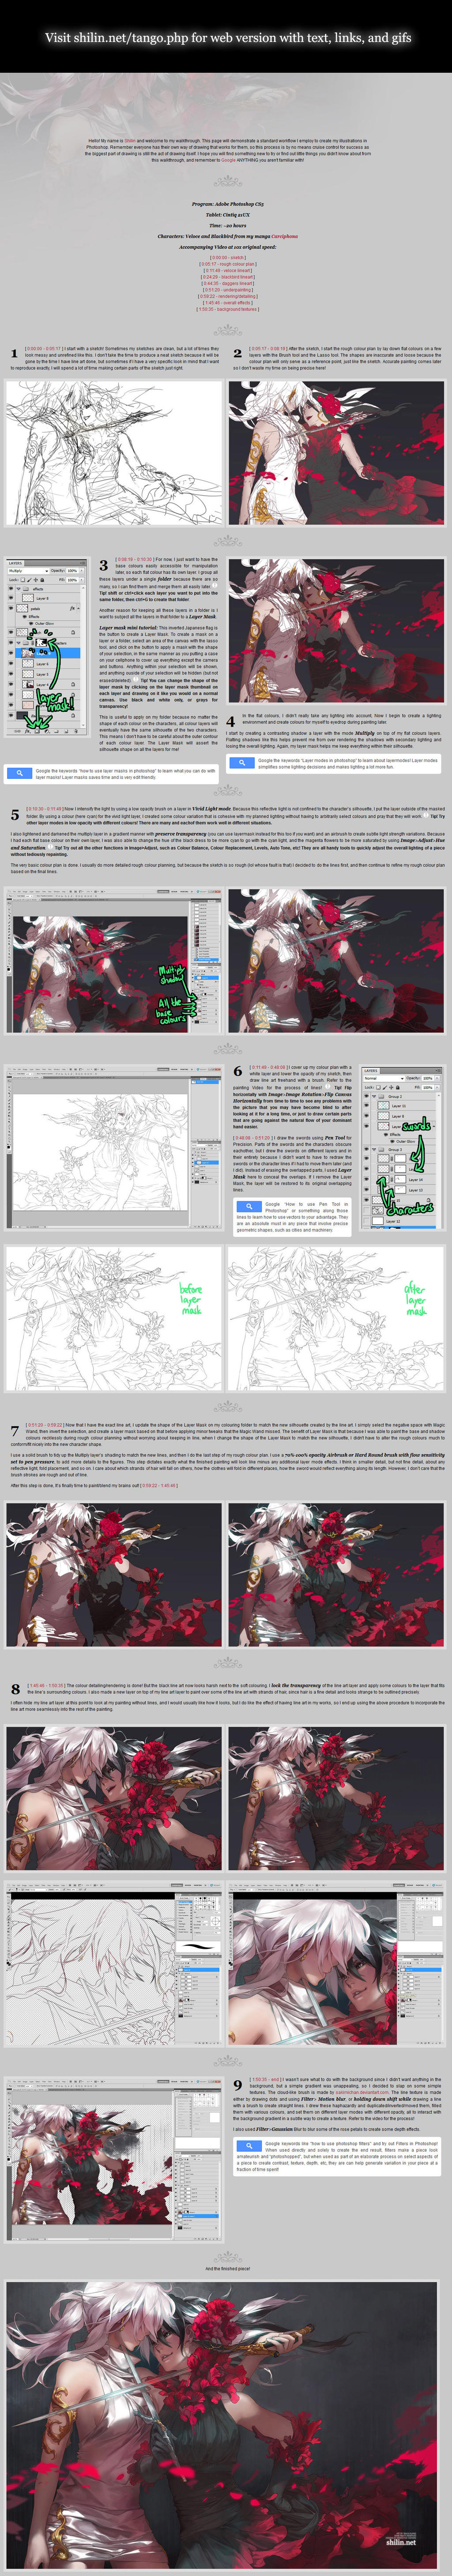 2013 Shilin's drawing tutorial/walkthrough by shilin